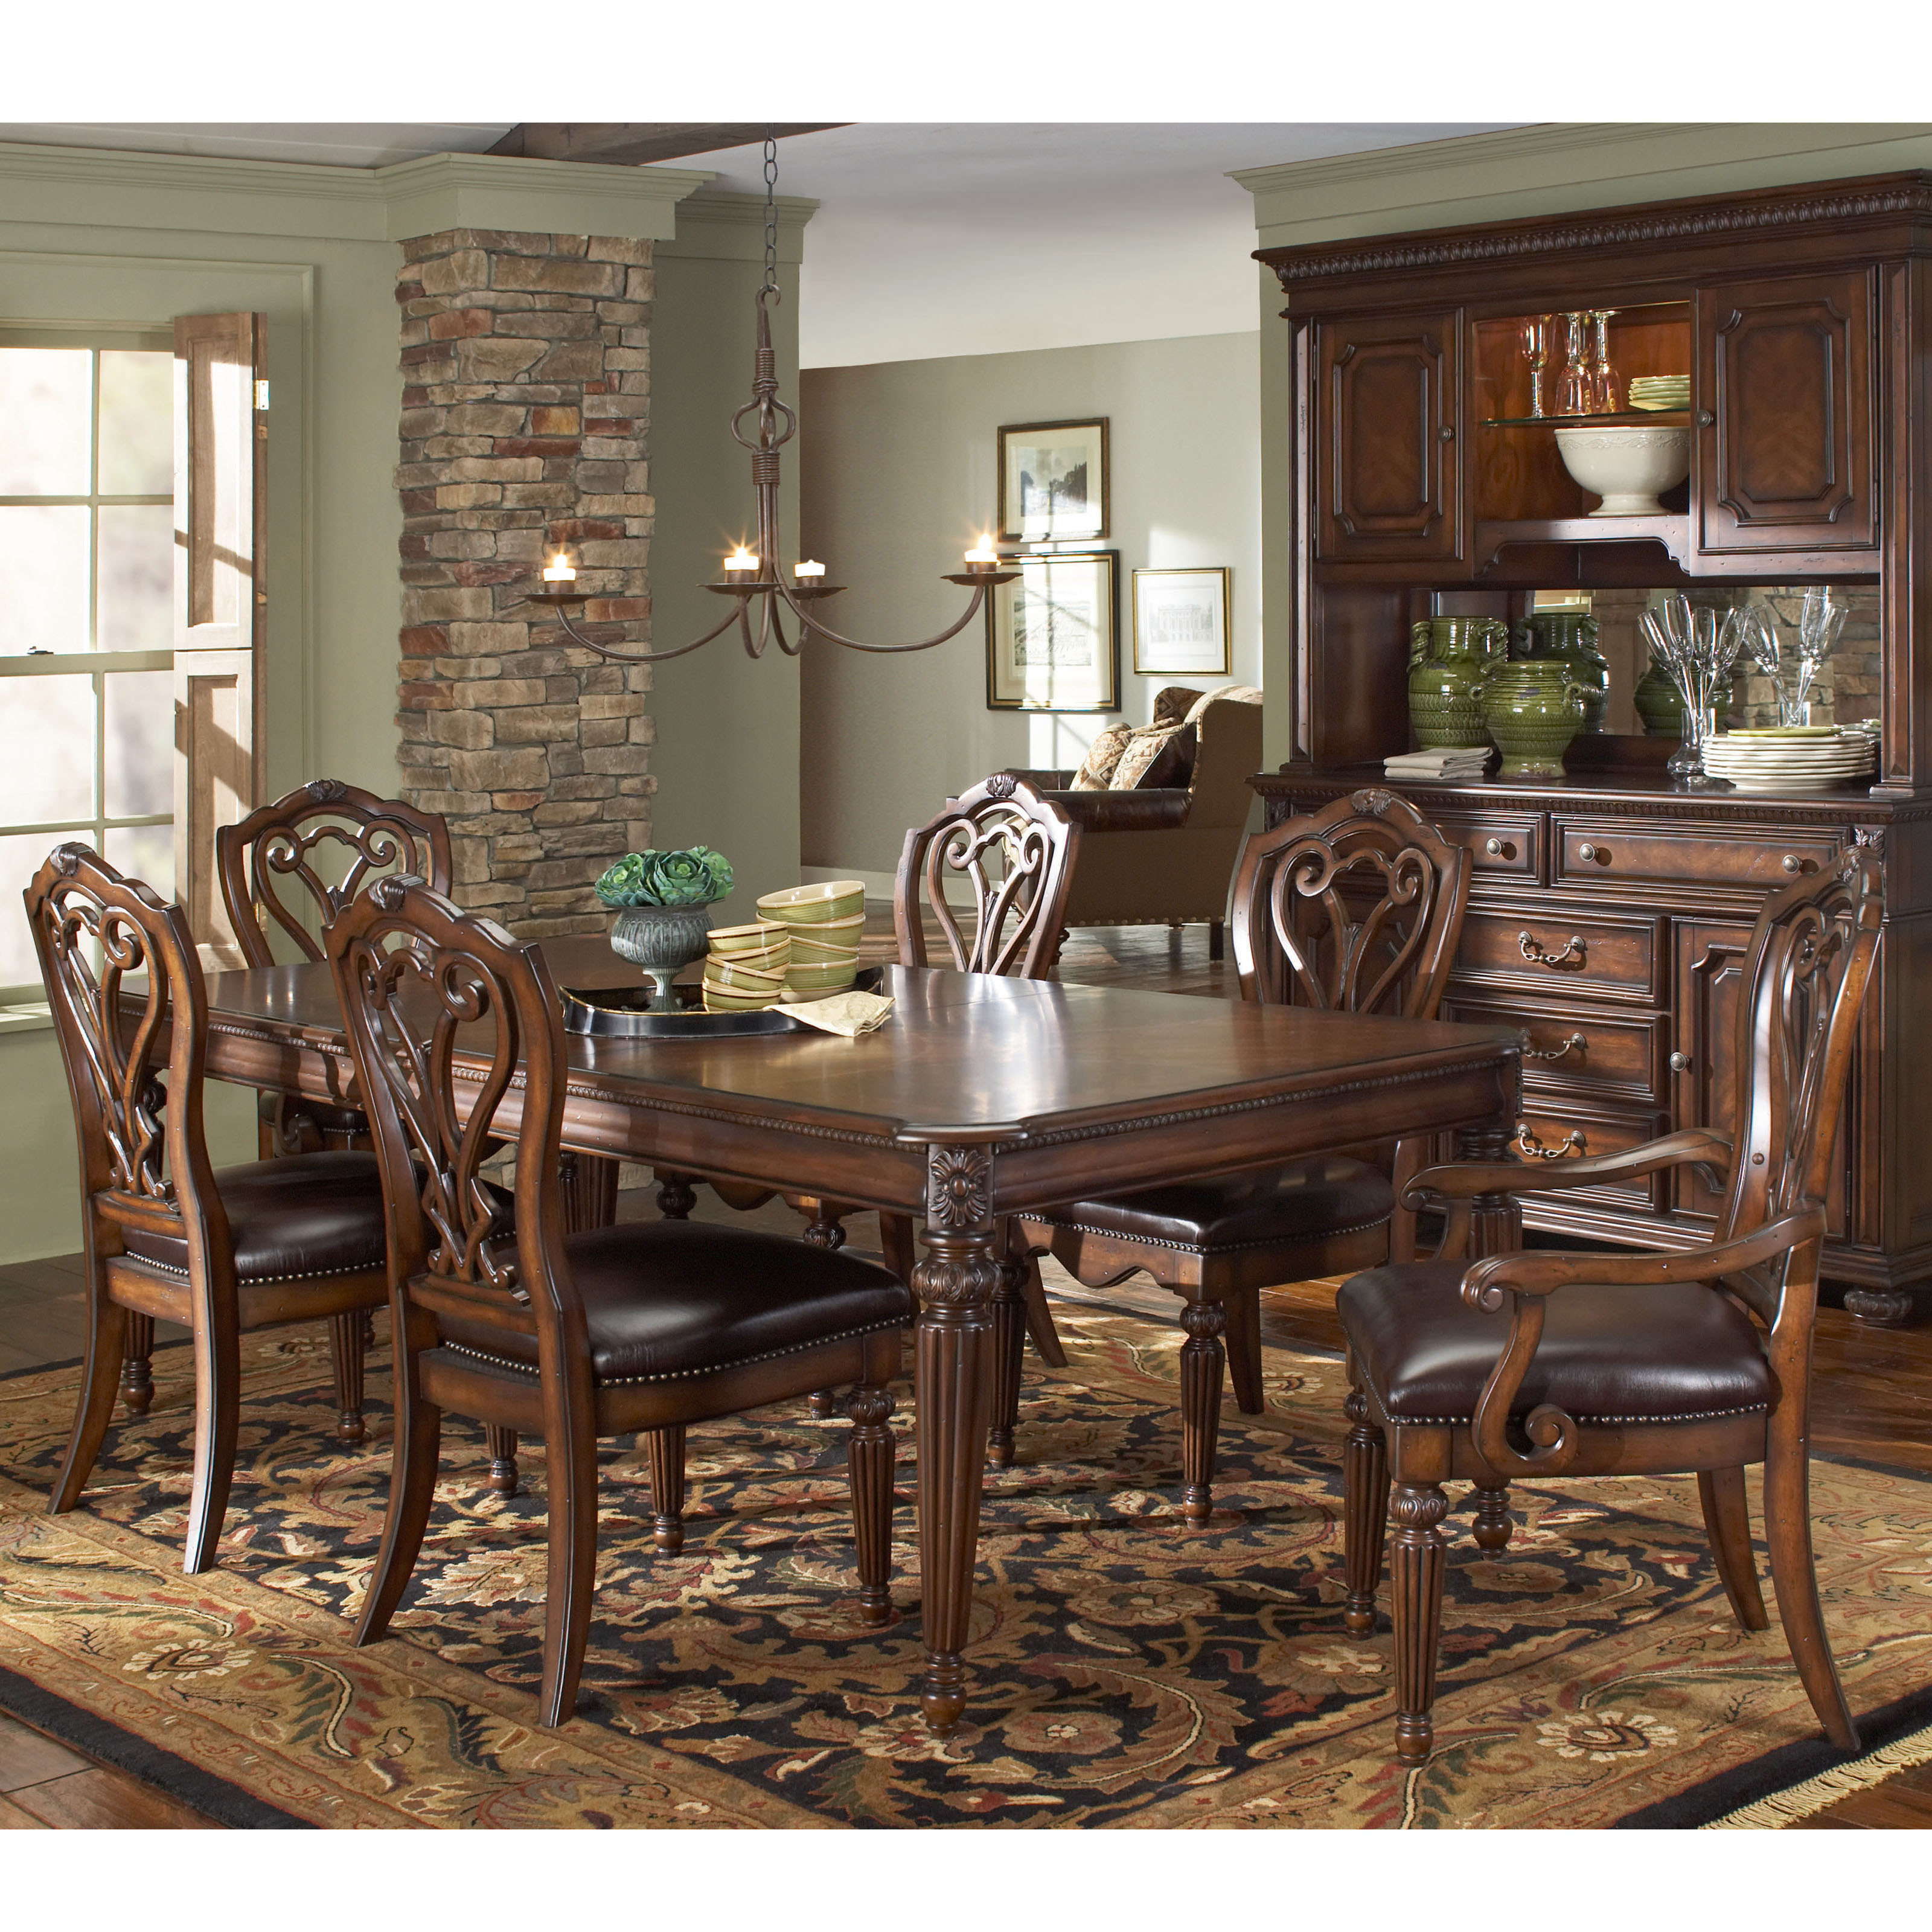 American Drew Barrington House 7 Pc Dining Set At Hayneedle